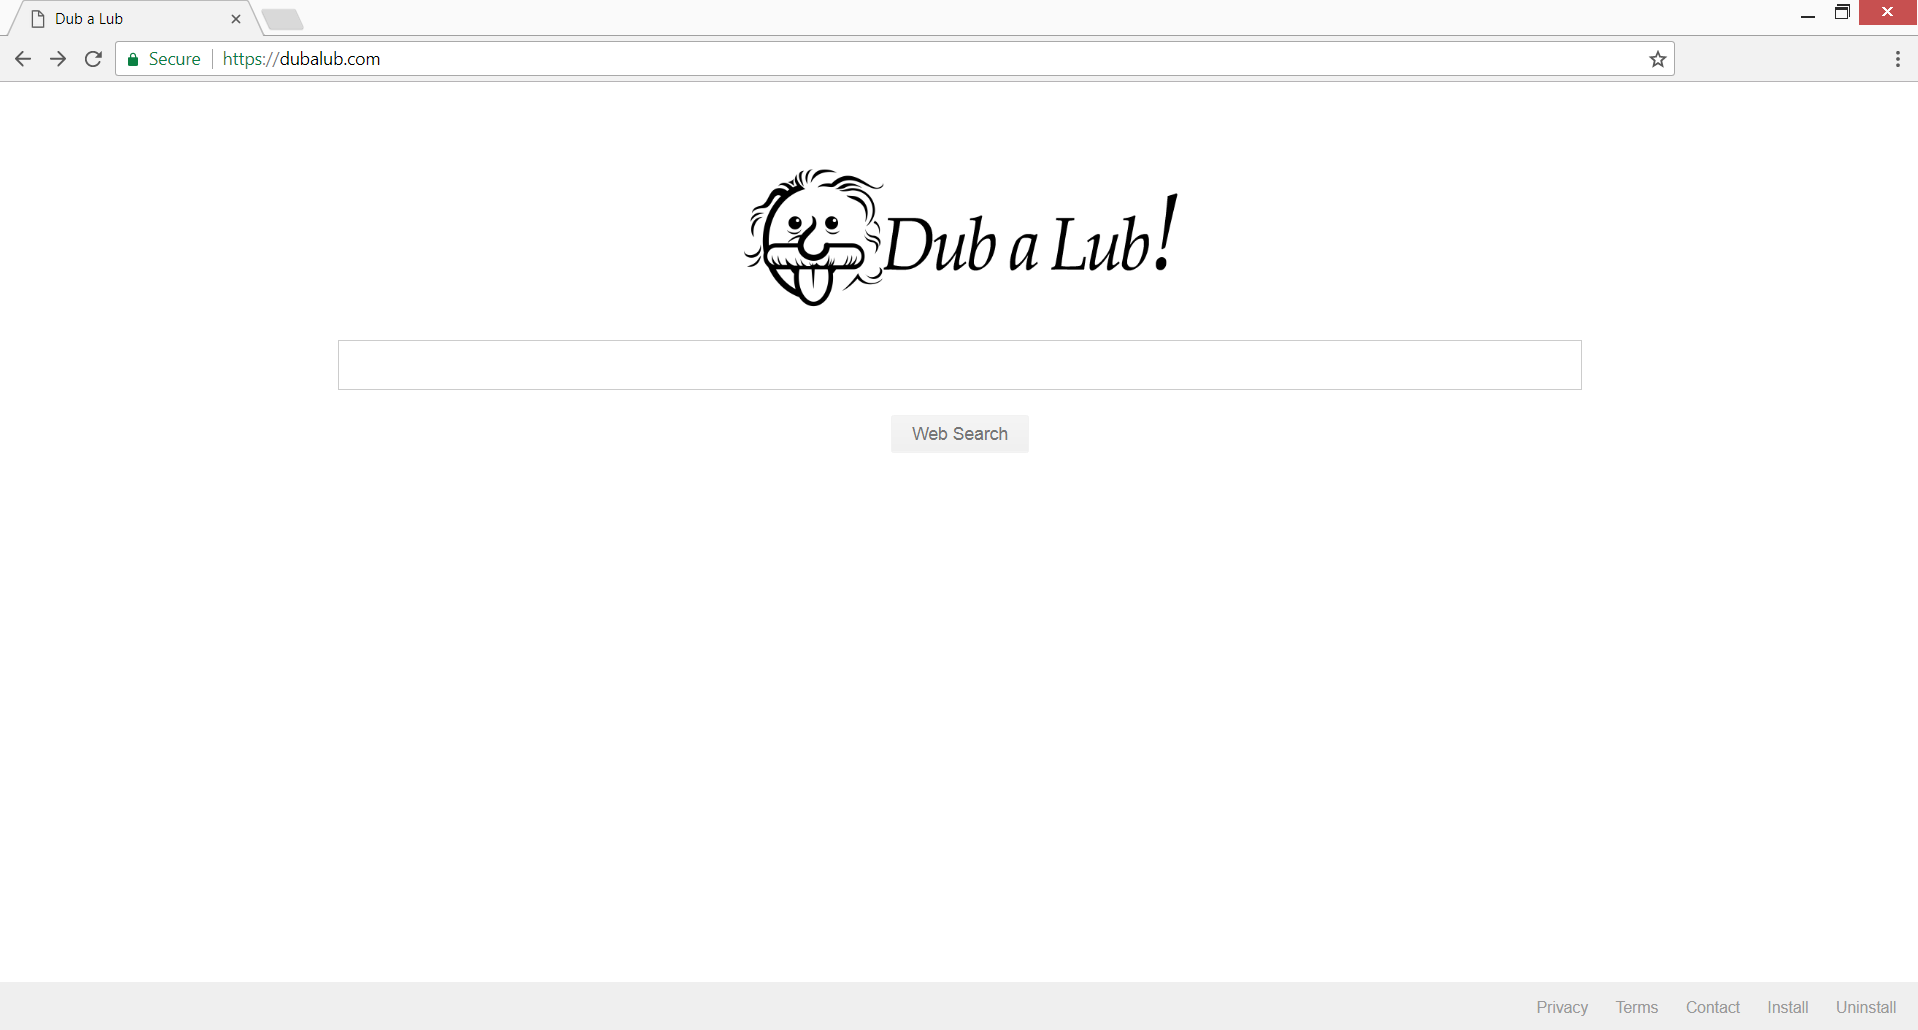 remove dubalub.com redirect homepage hoax search engine stf